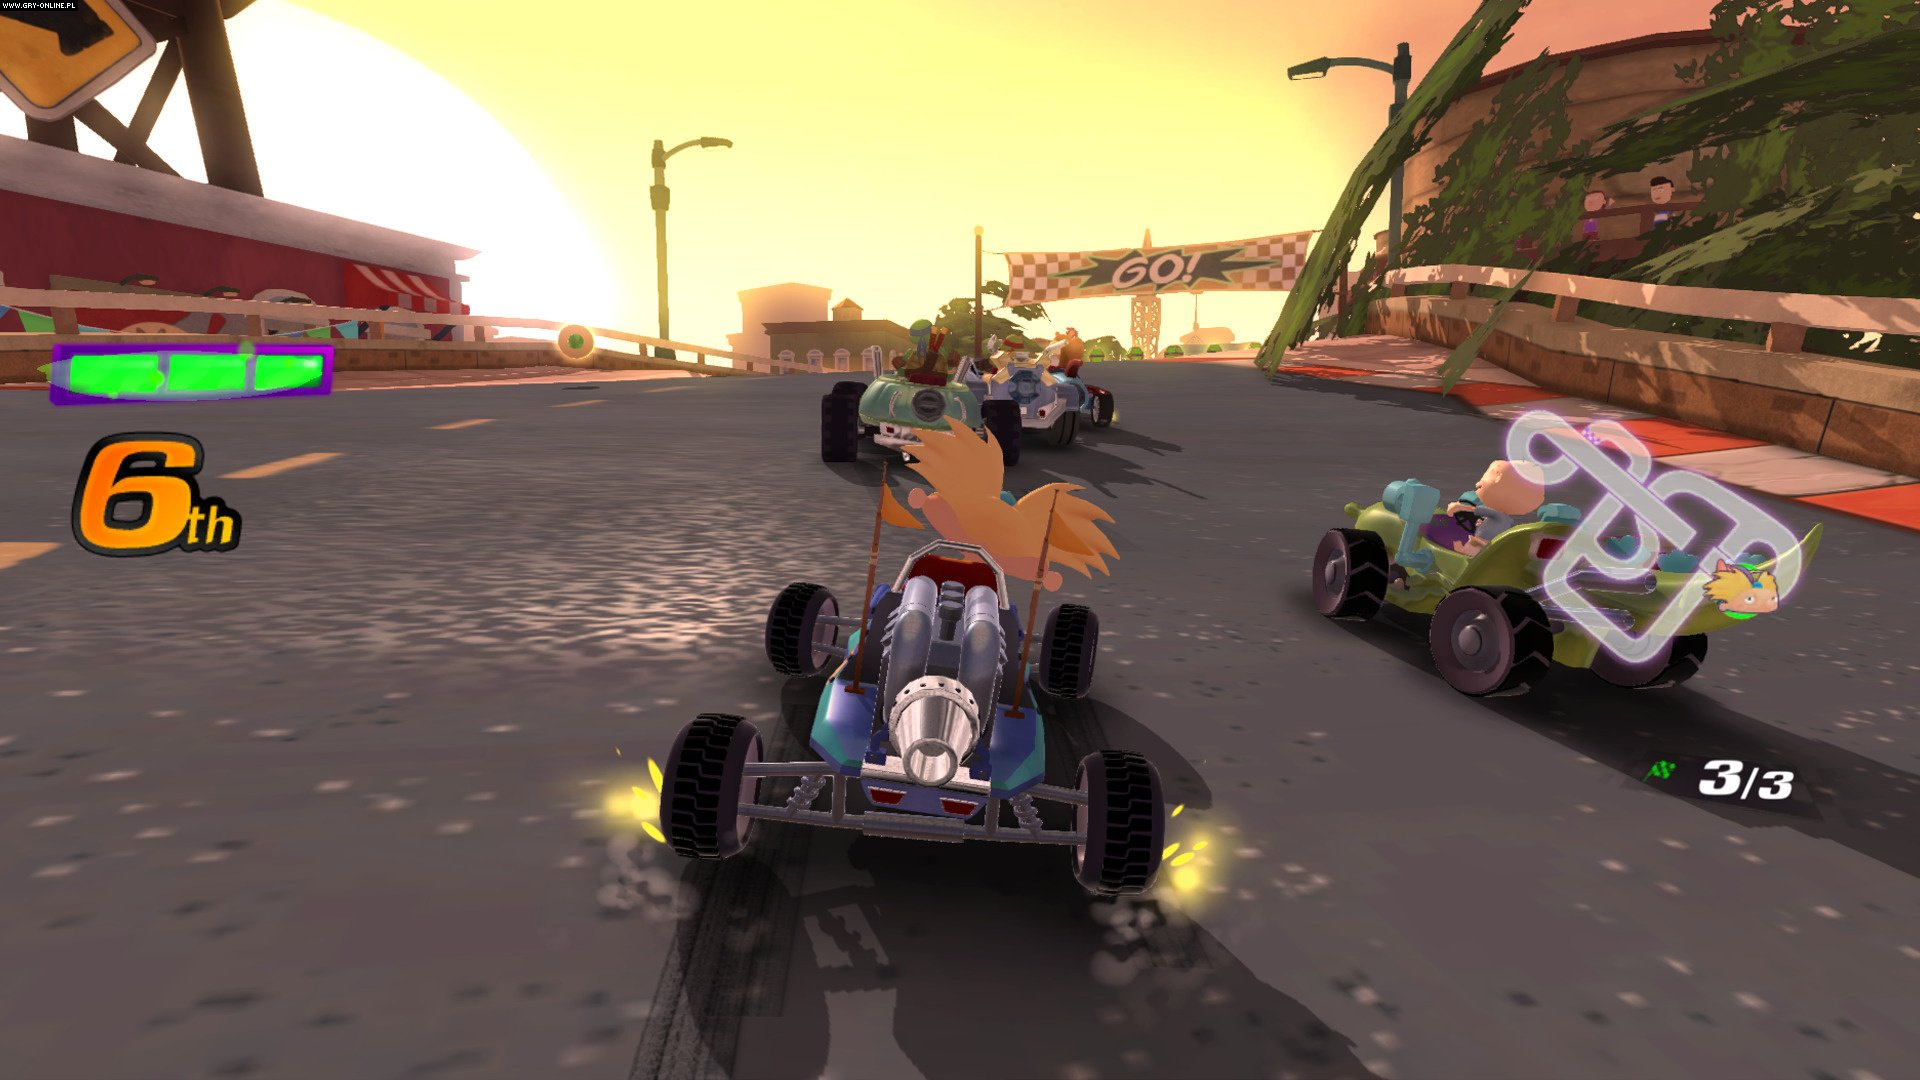 Nickelodeon Kart Racers PS4, XONE, Switch Gry Screen 10/12, GameMill Entertainment